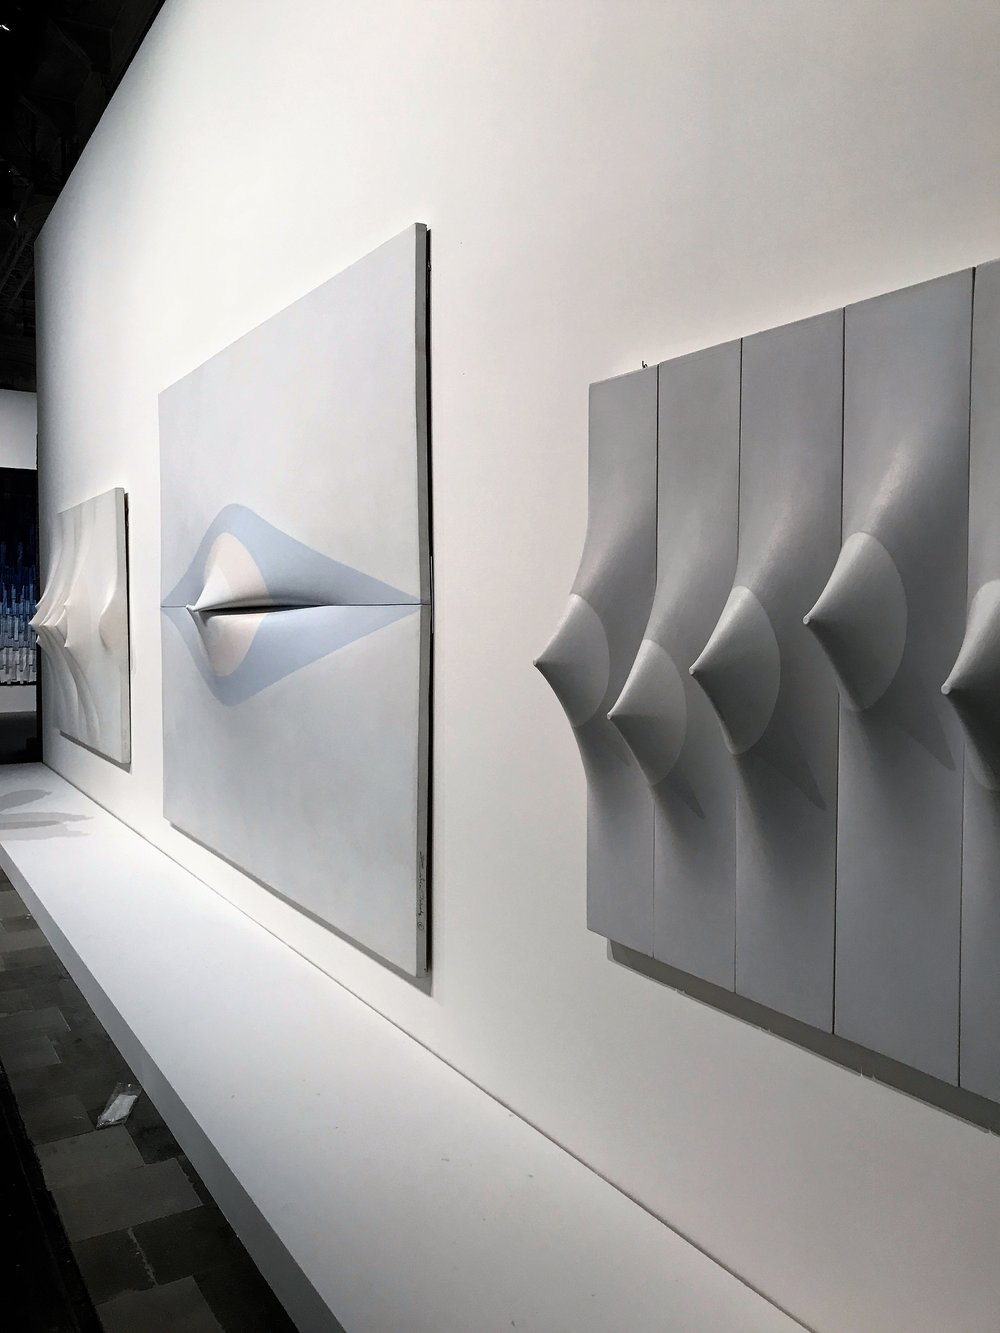 Zilia Sanchez's shaped canvases